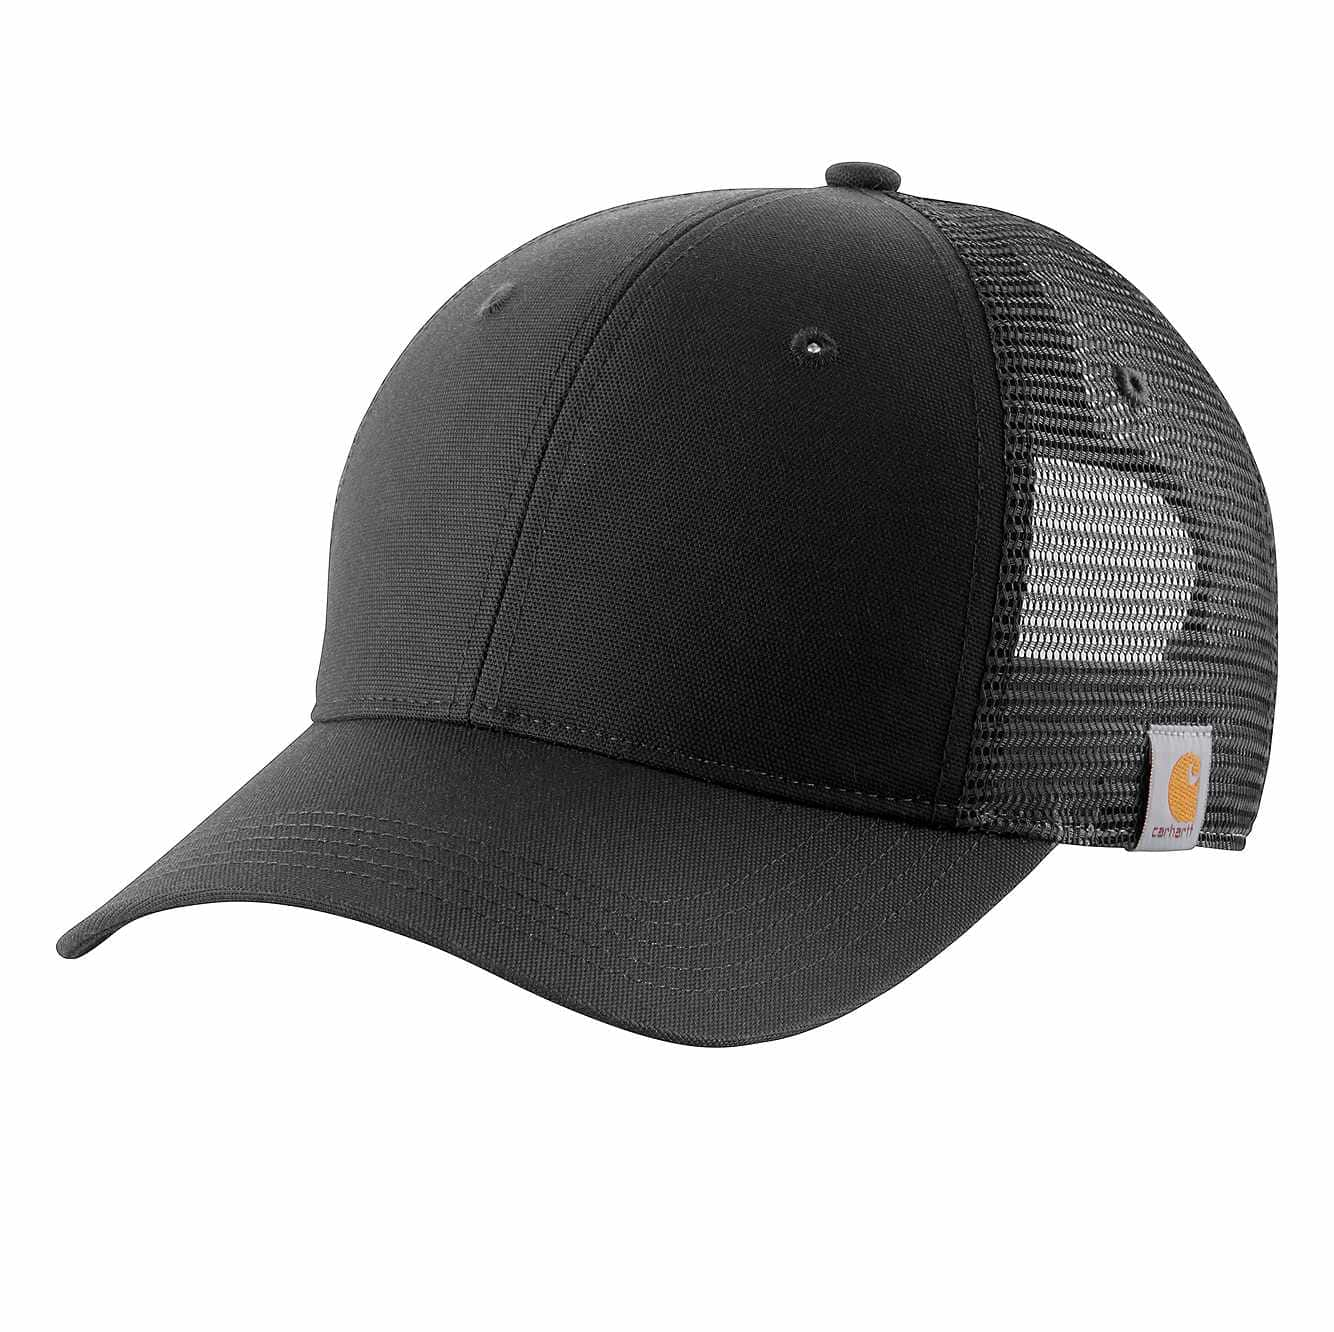 Picture of Rugged Professional™ Series Baseball Cap in Black